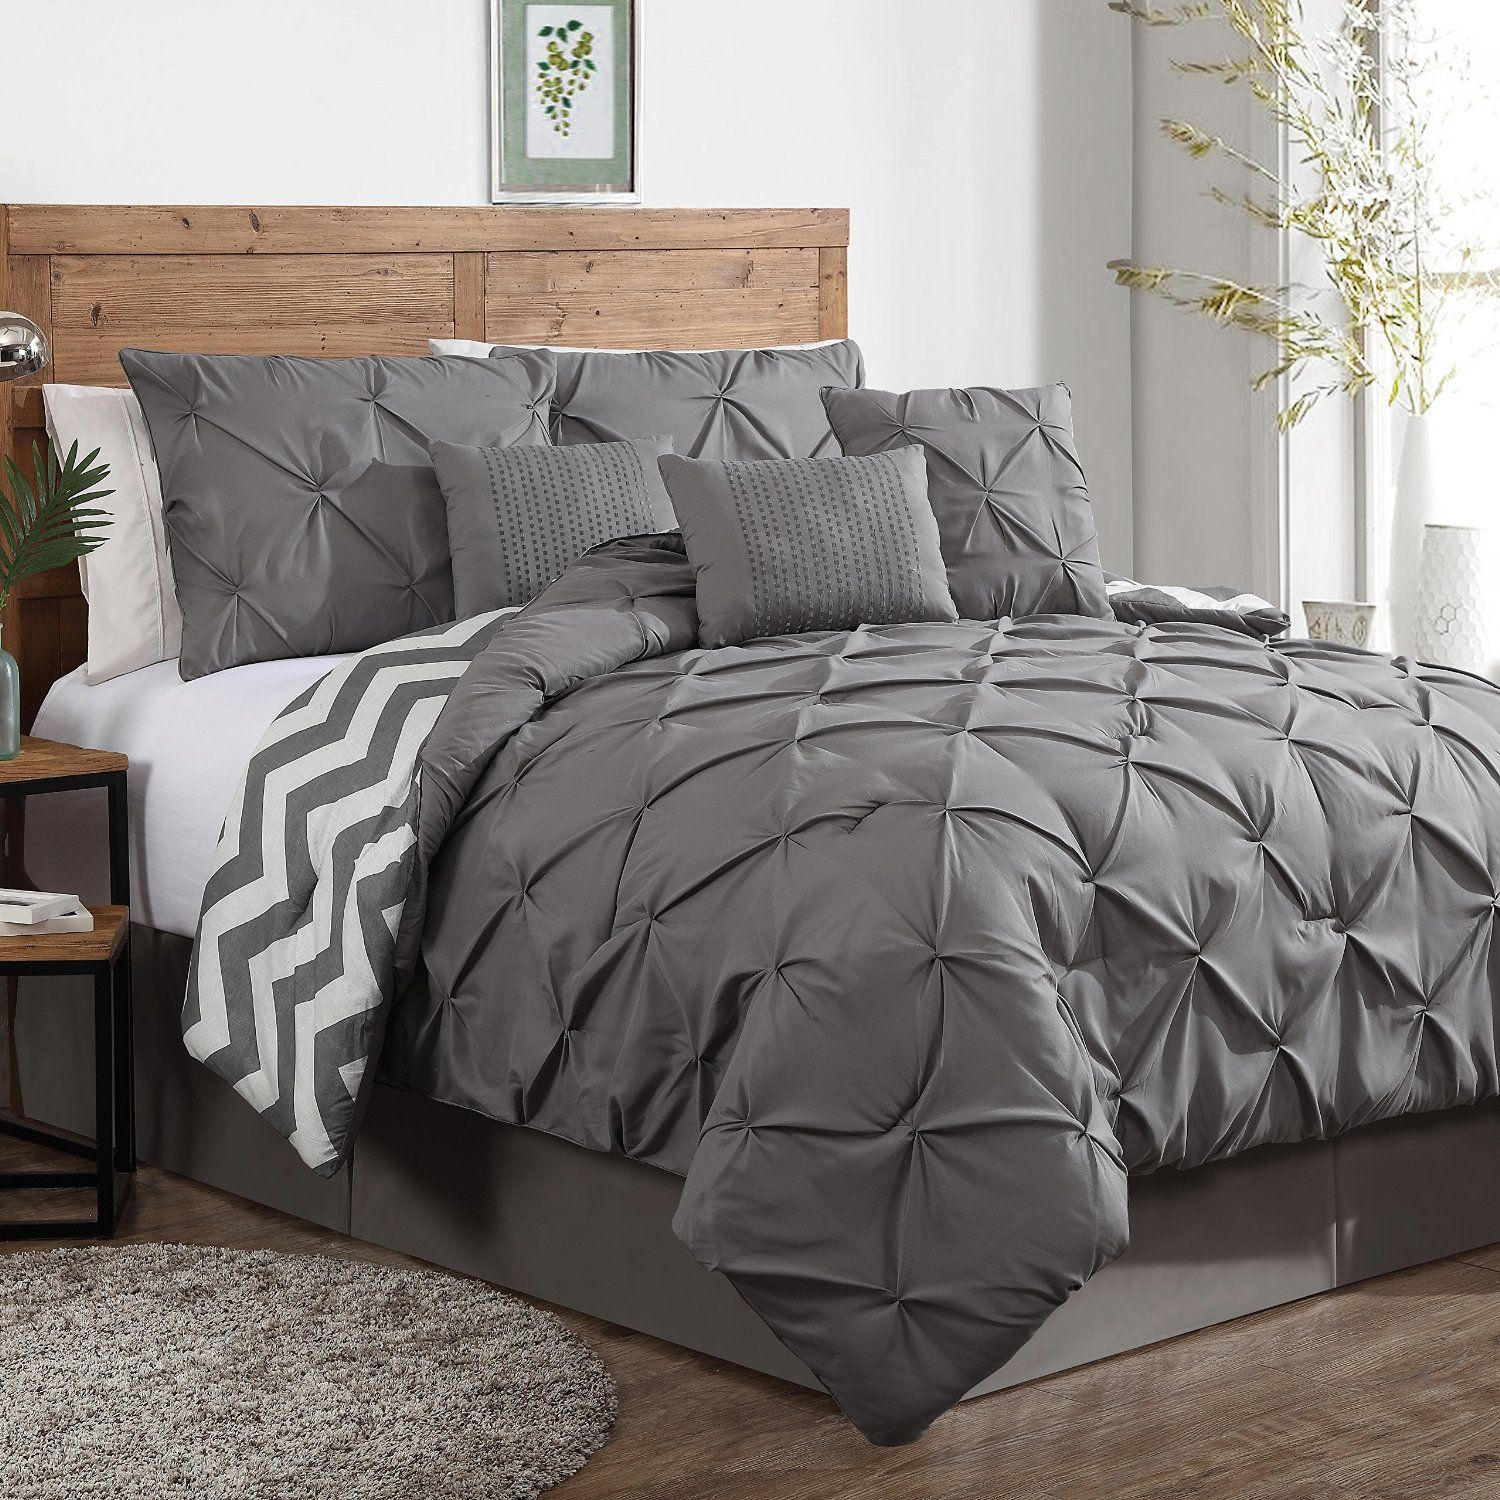 lodge set comforter ecrins theme grey materials most sets luxurious for